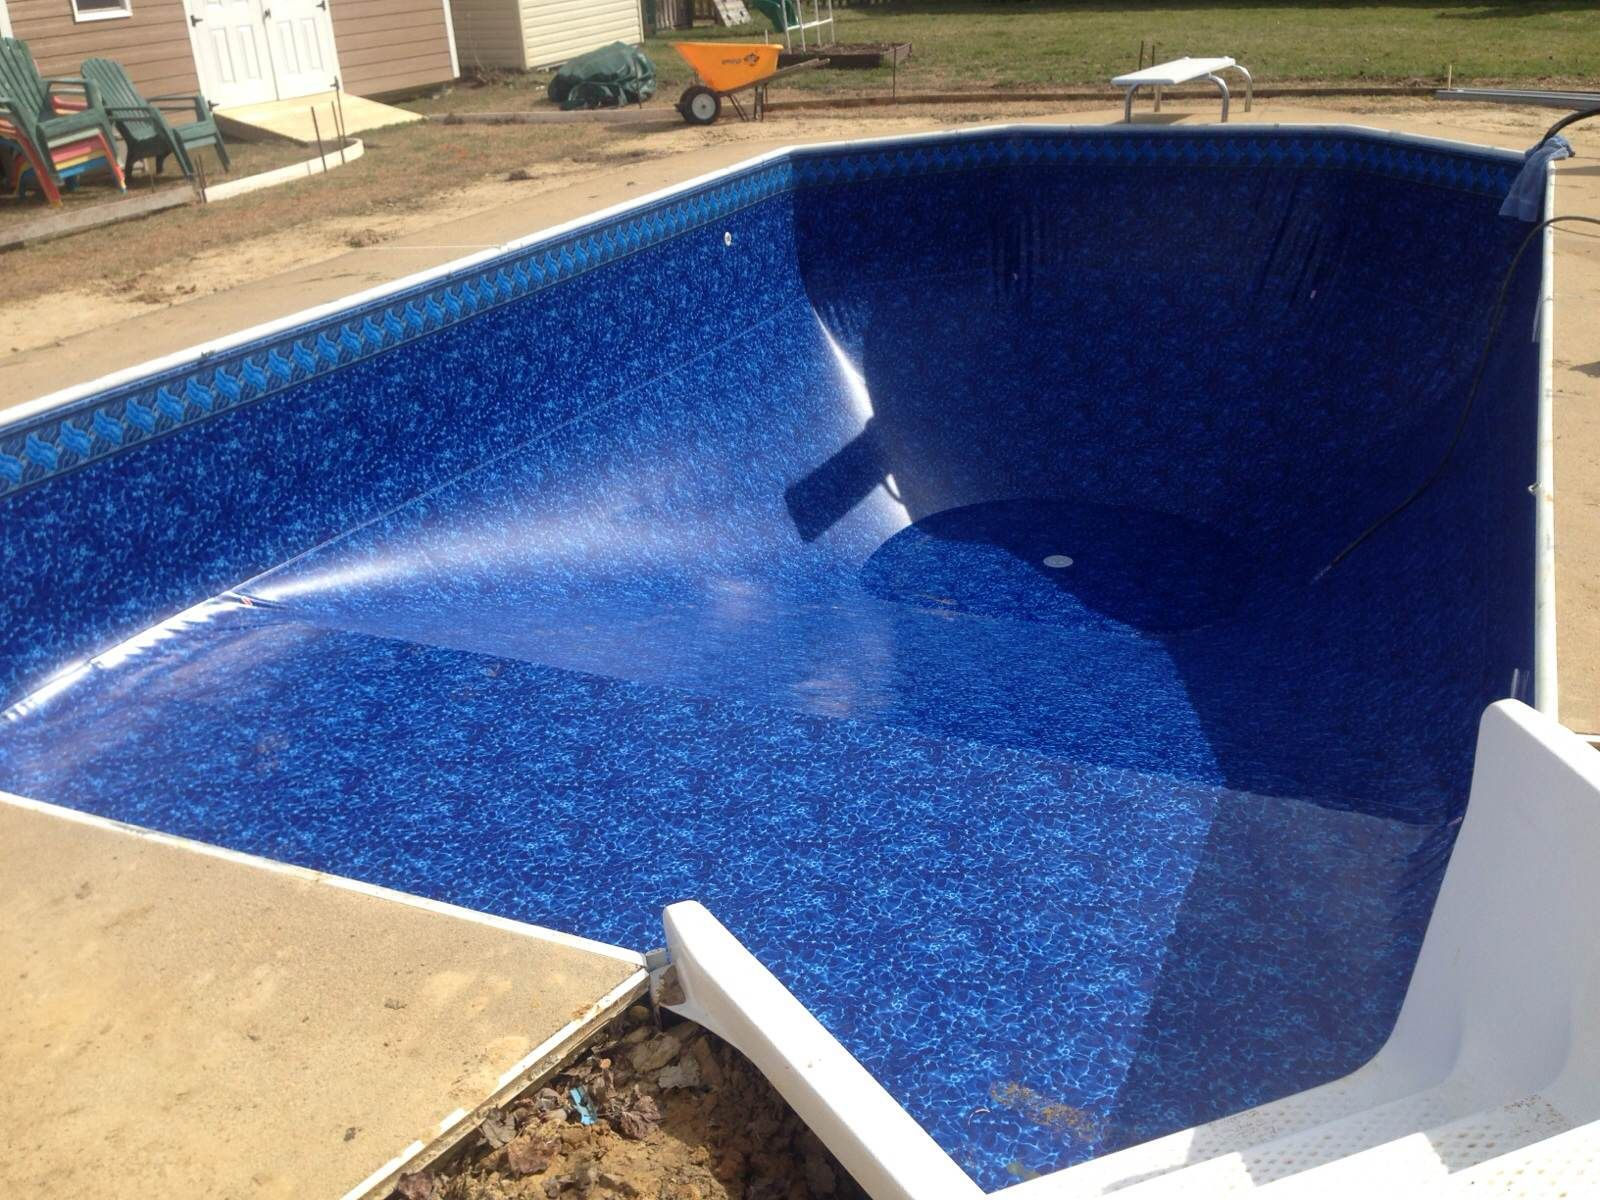 Swiming pools pool liners and hot tubs landscaping with for Pool liners